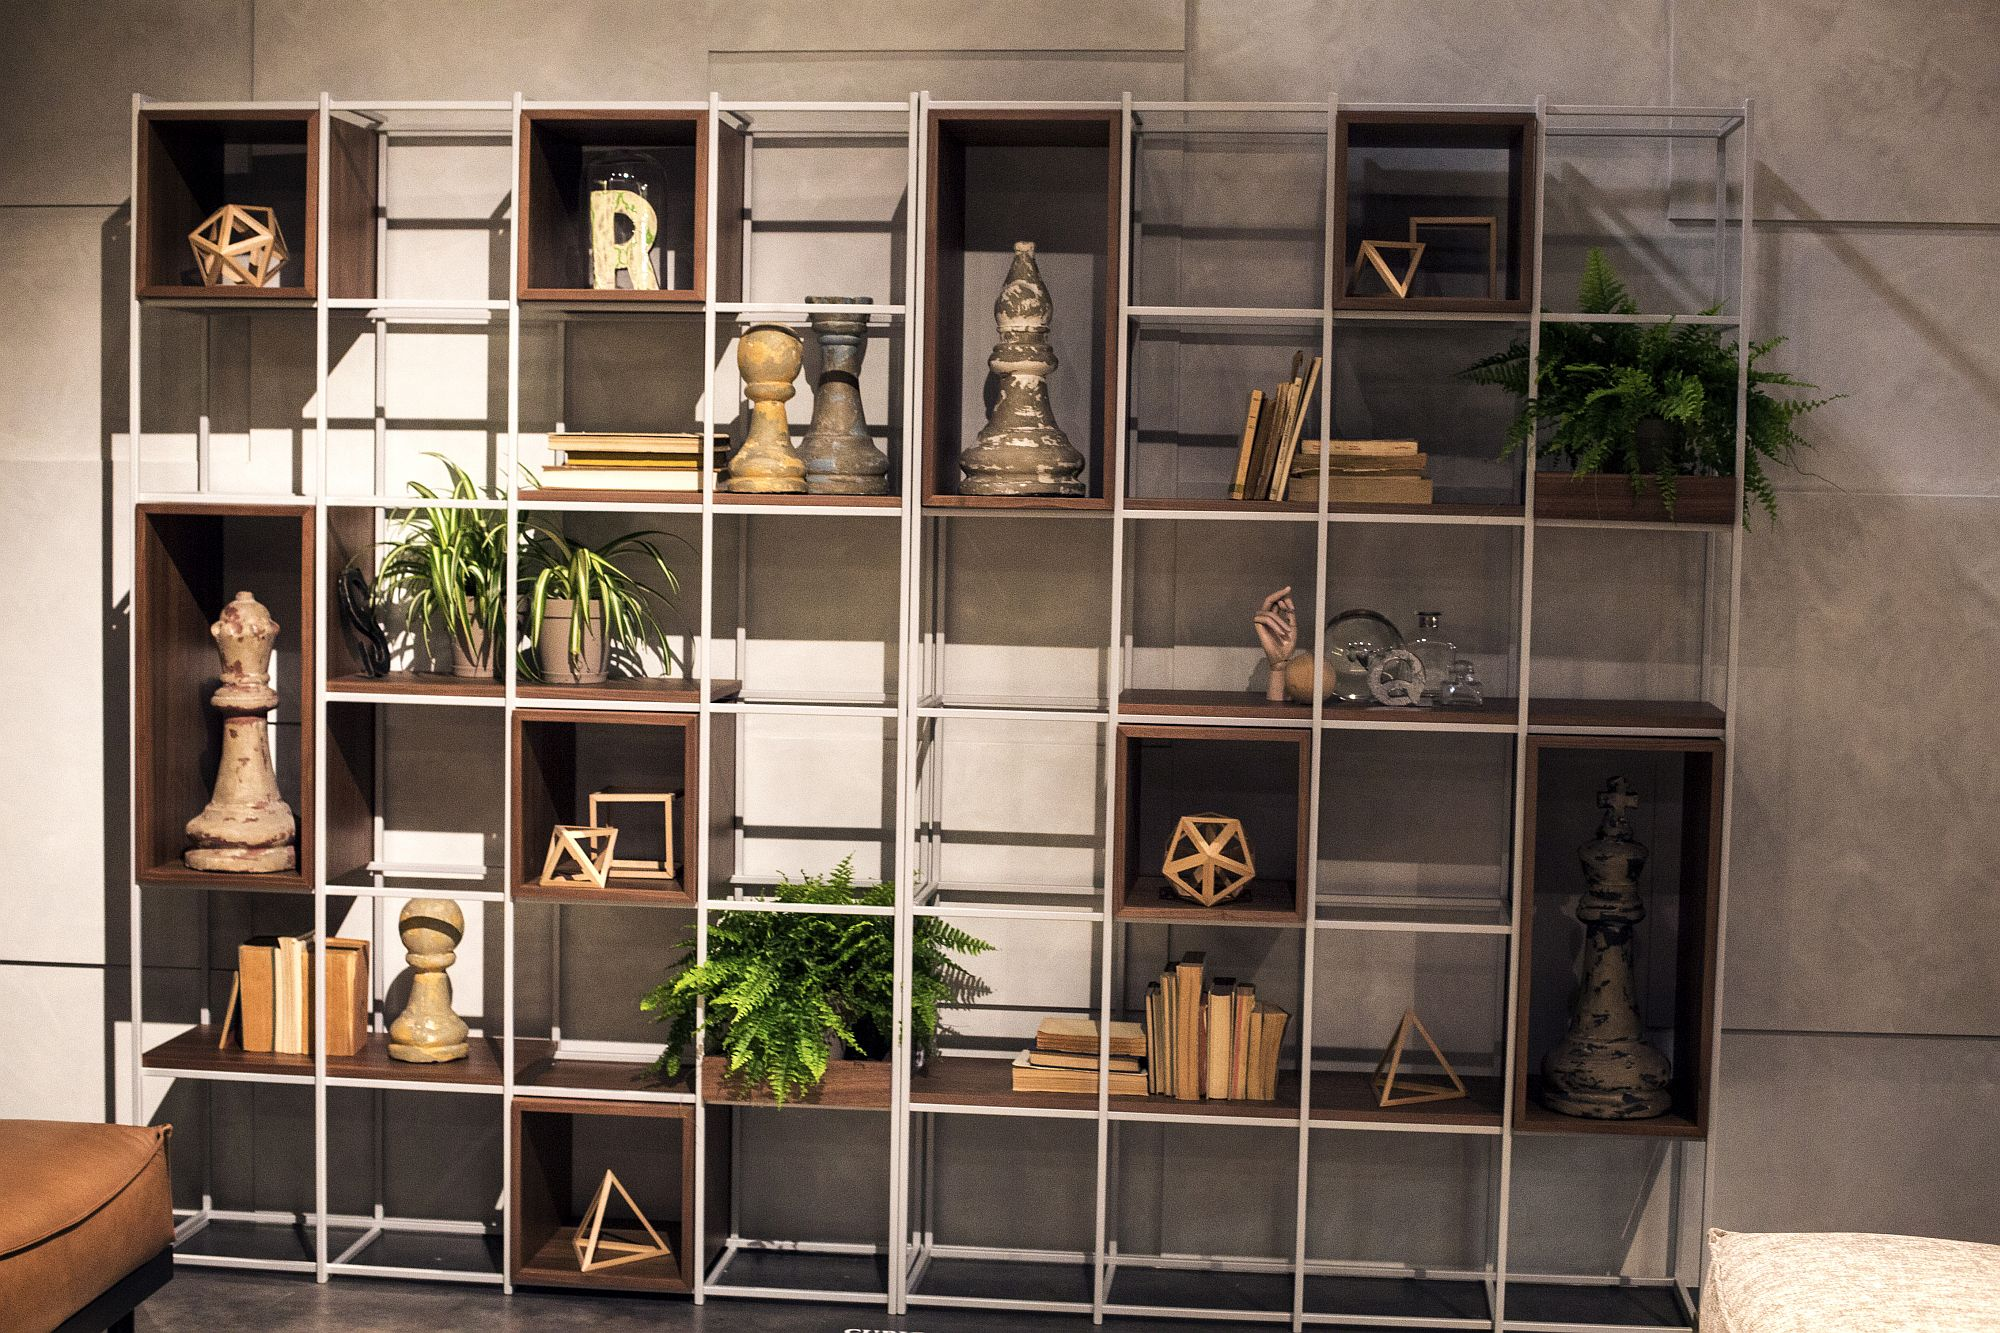 Metallic frame coupled with wooden boxes to create an inimitable shelf